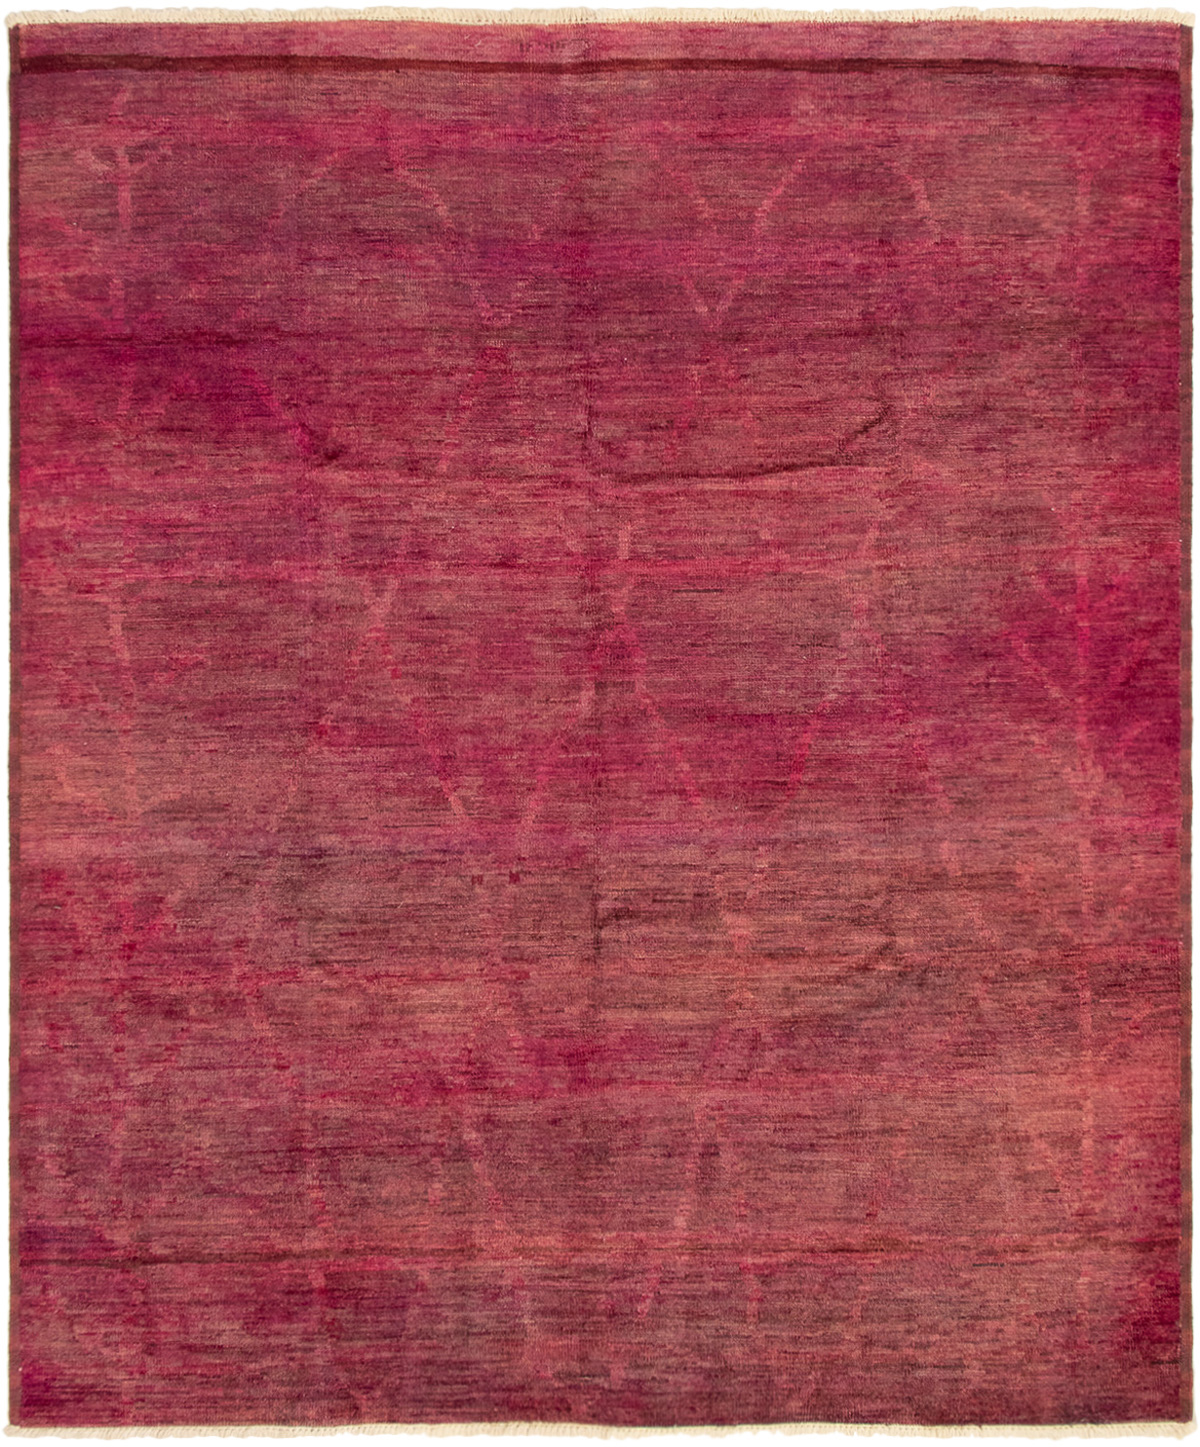 """Hand-knotted Vibrance Dark Pink Wool Rug 8'0"""" x 9'6"""" Size: 8'0"""" x 9'6"""""""